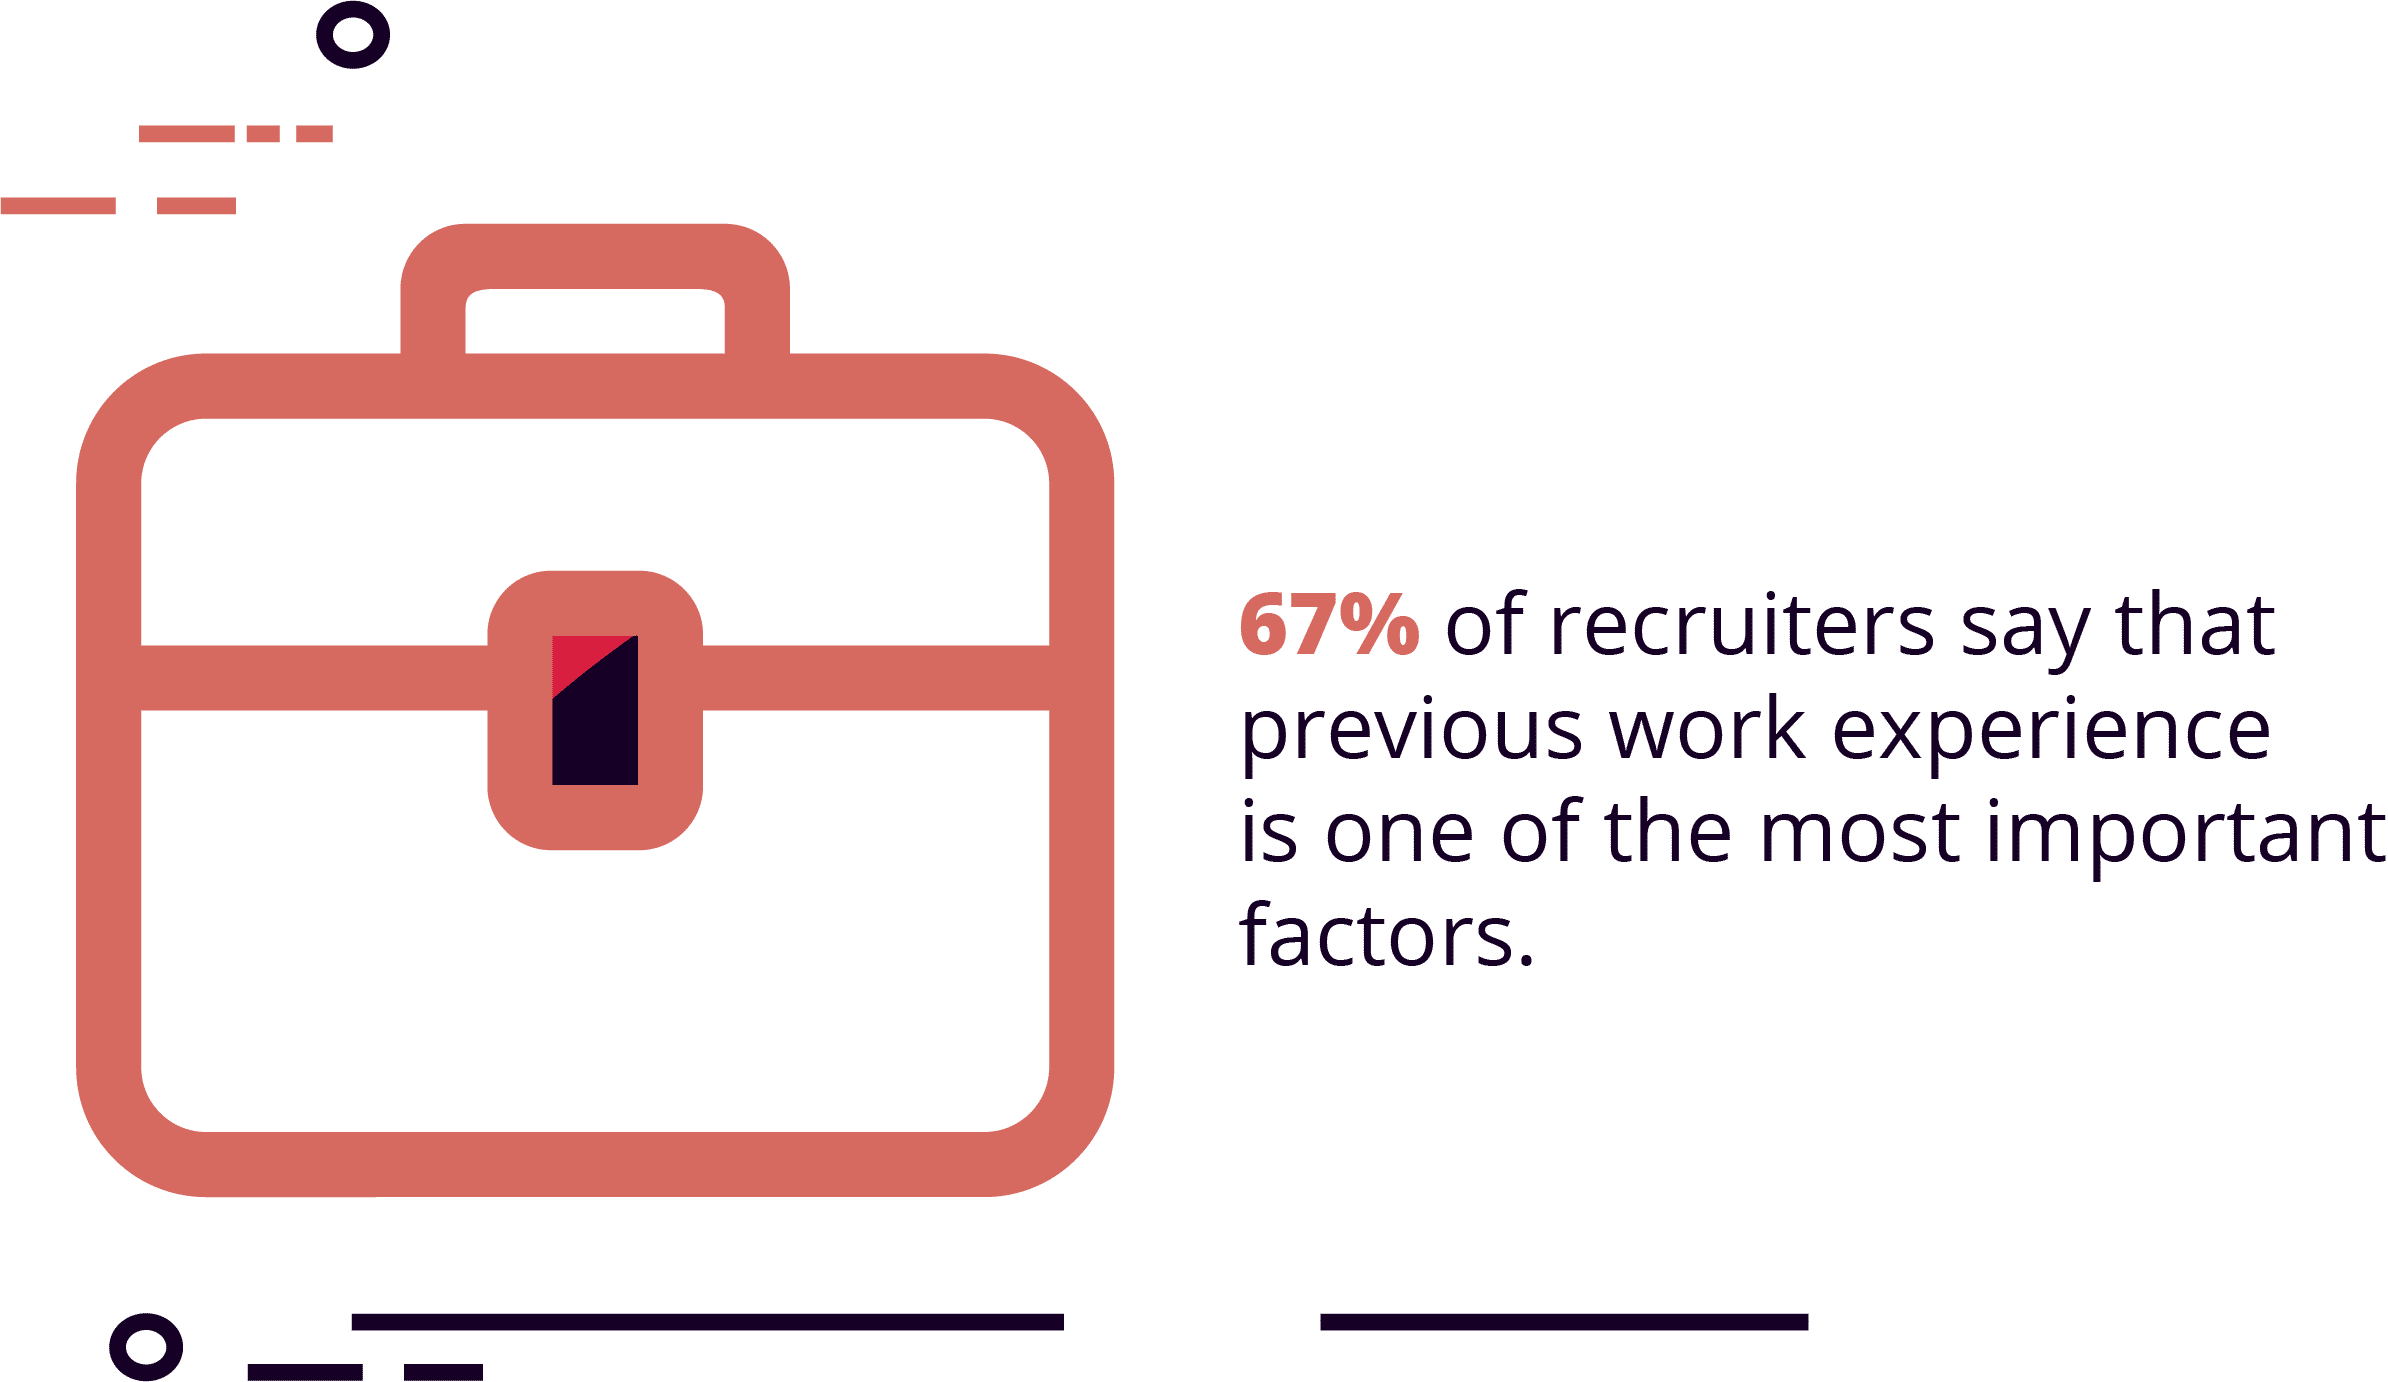 67% of recruiters say that job experience is the most important part of the resume